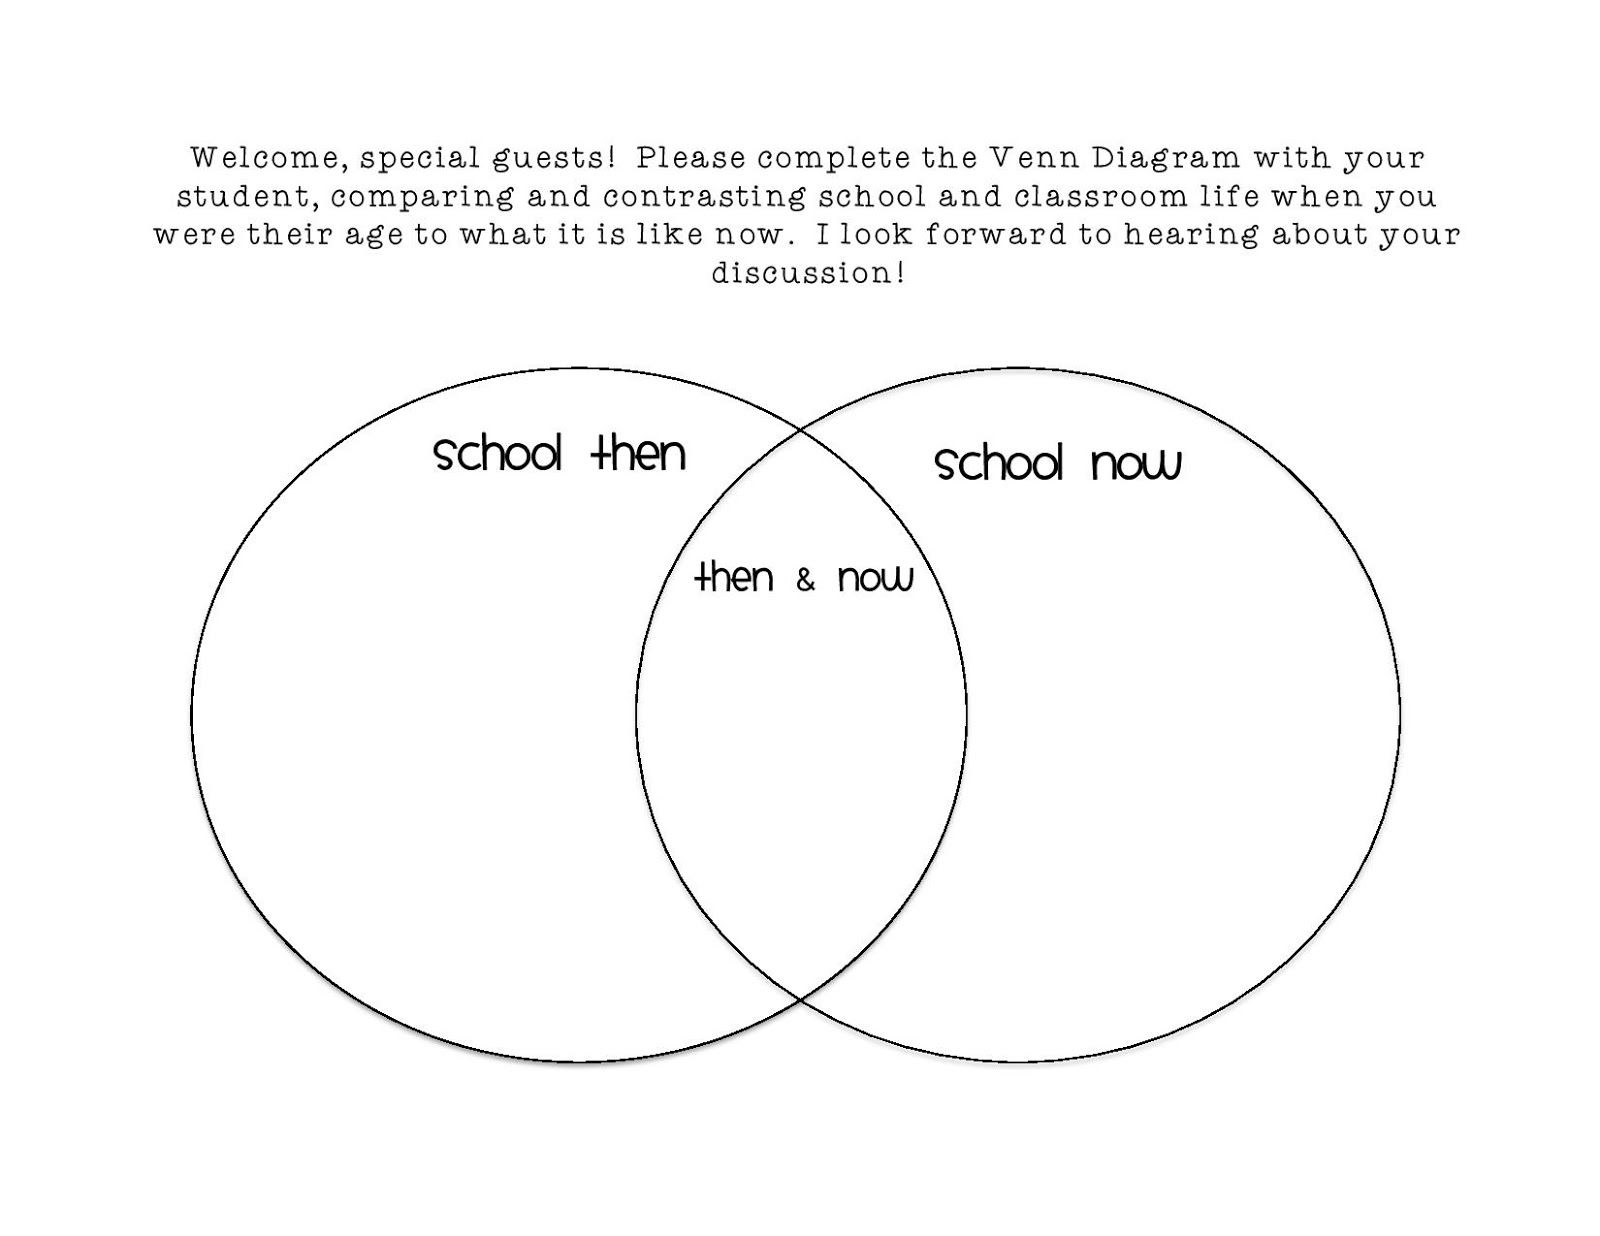 Day venn diagram product wiring diagrams the fashionista teacher grandparents day venn diagram the rh pinterest com grandparents day venn diagram grandparents day venn diagram ccuart